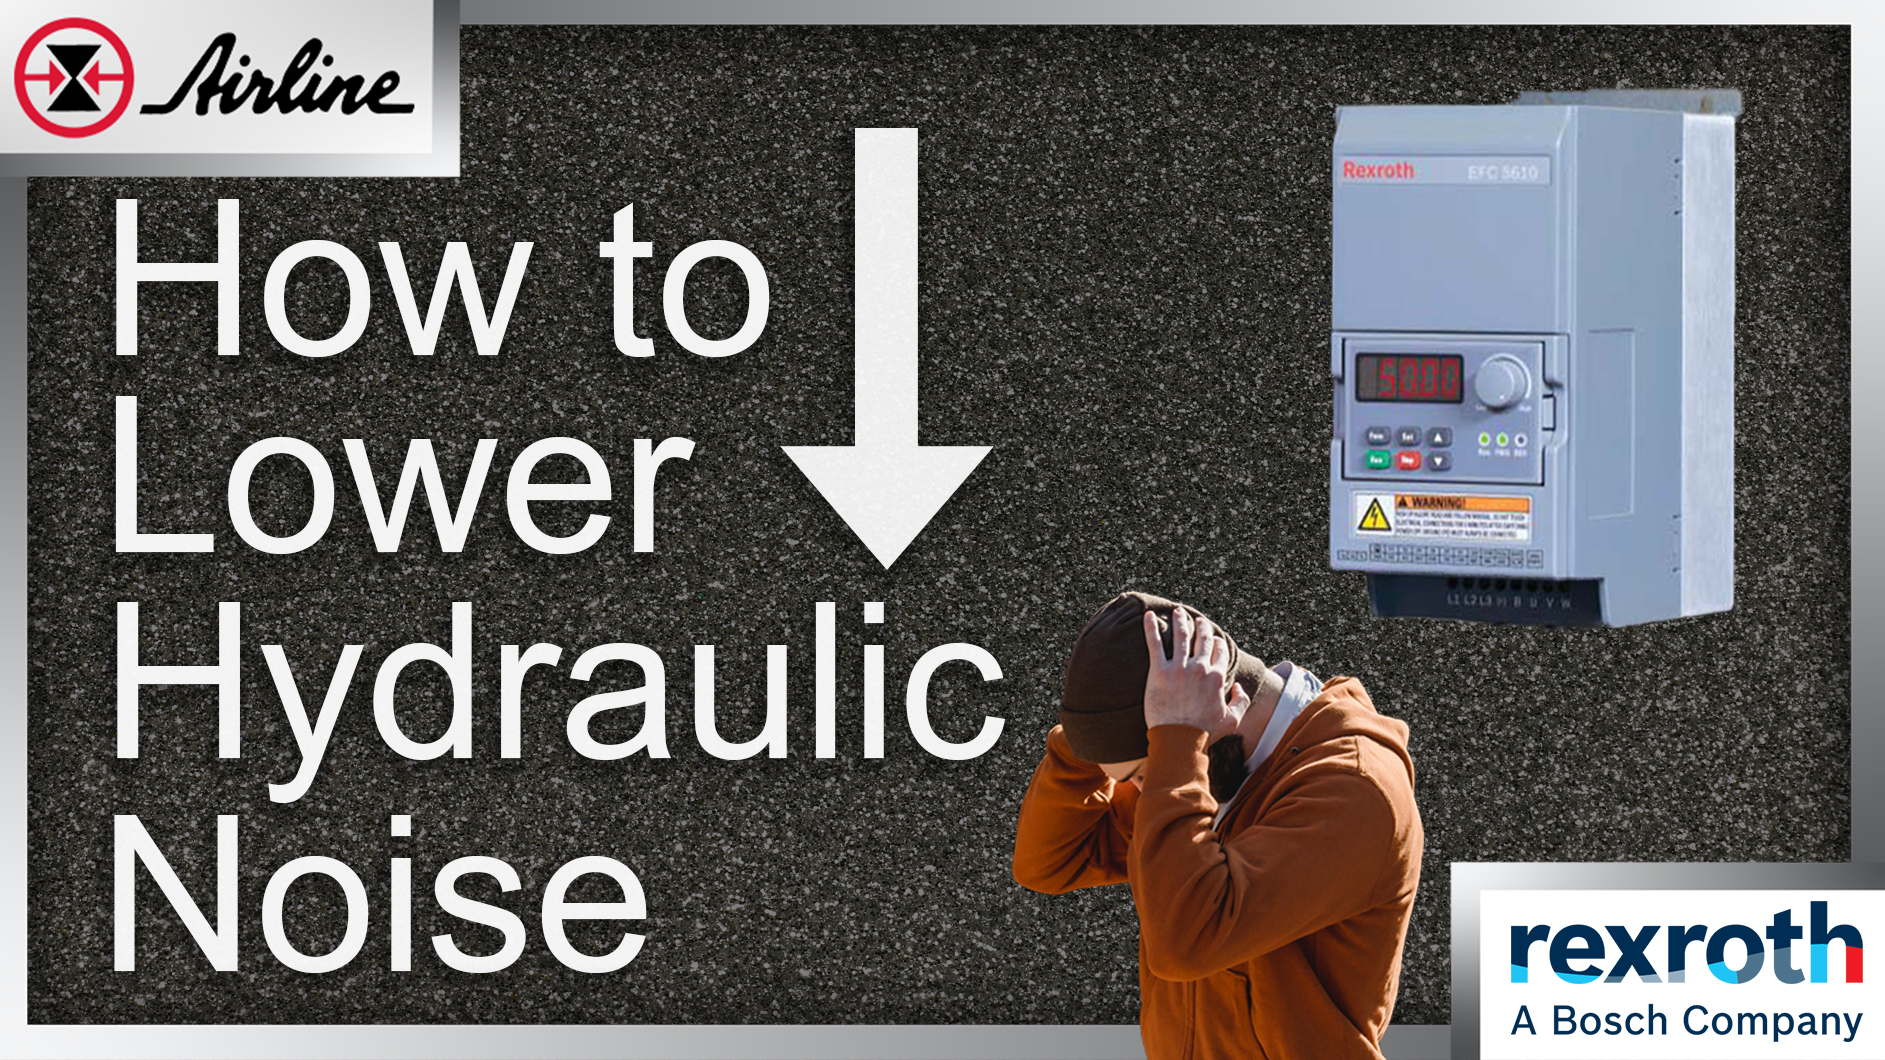 How to lower hydraulics noise